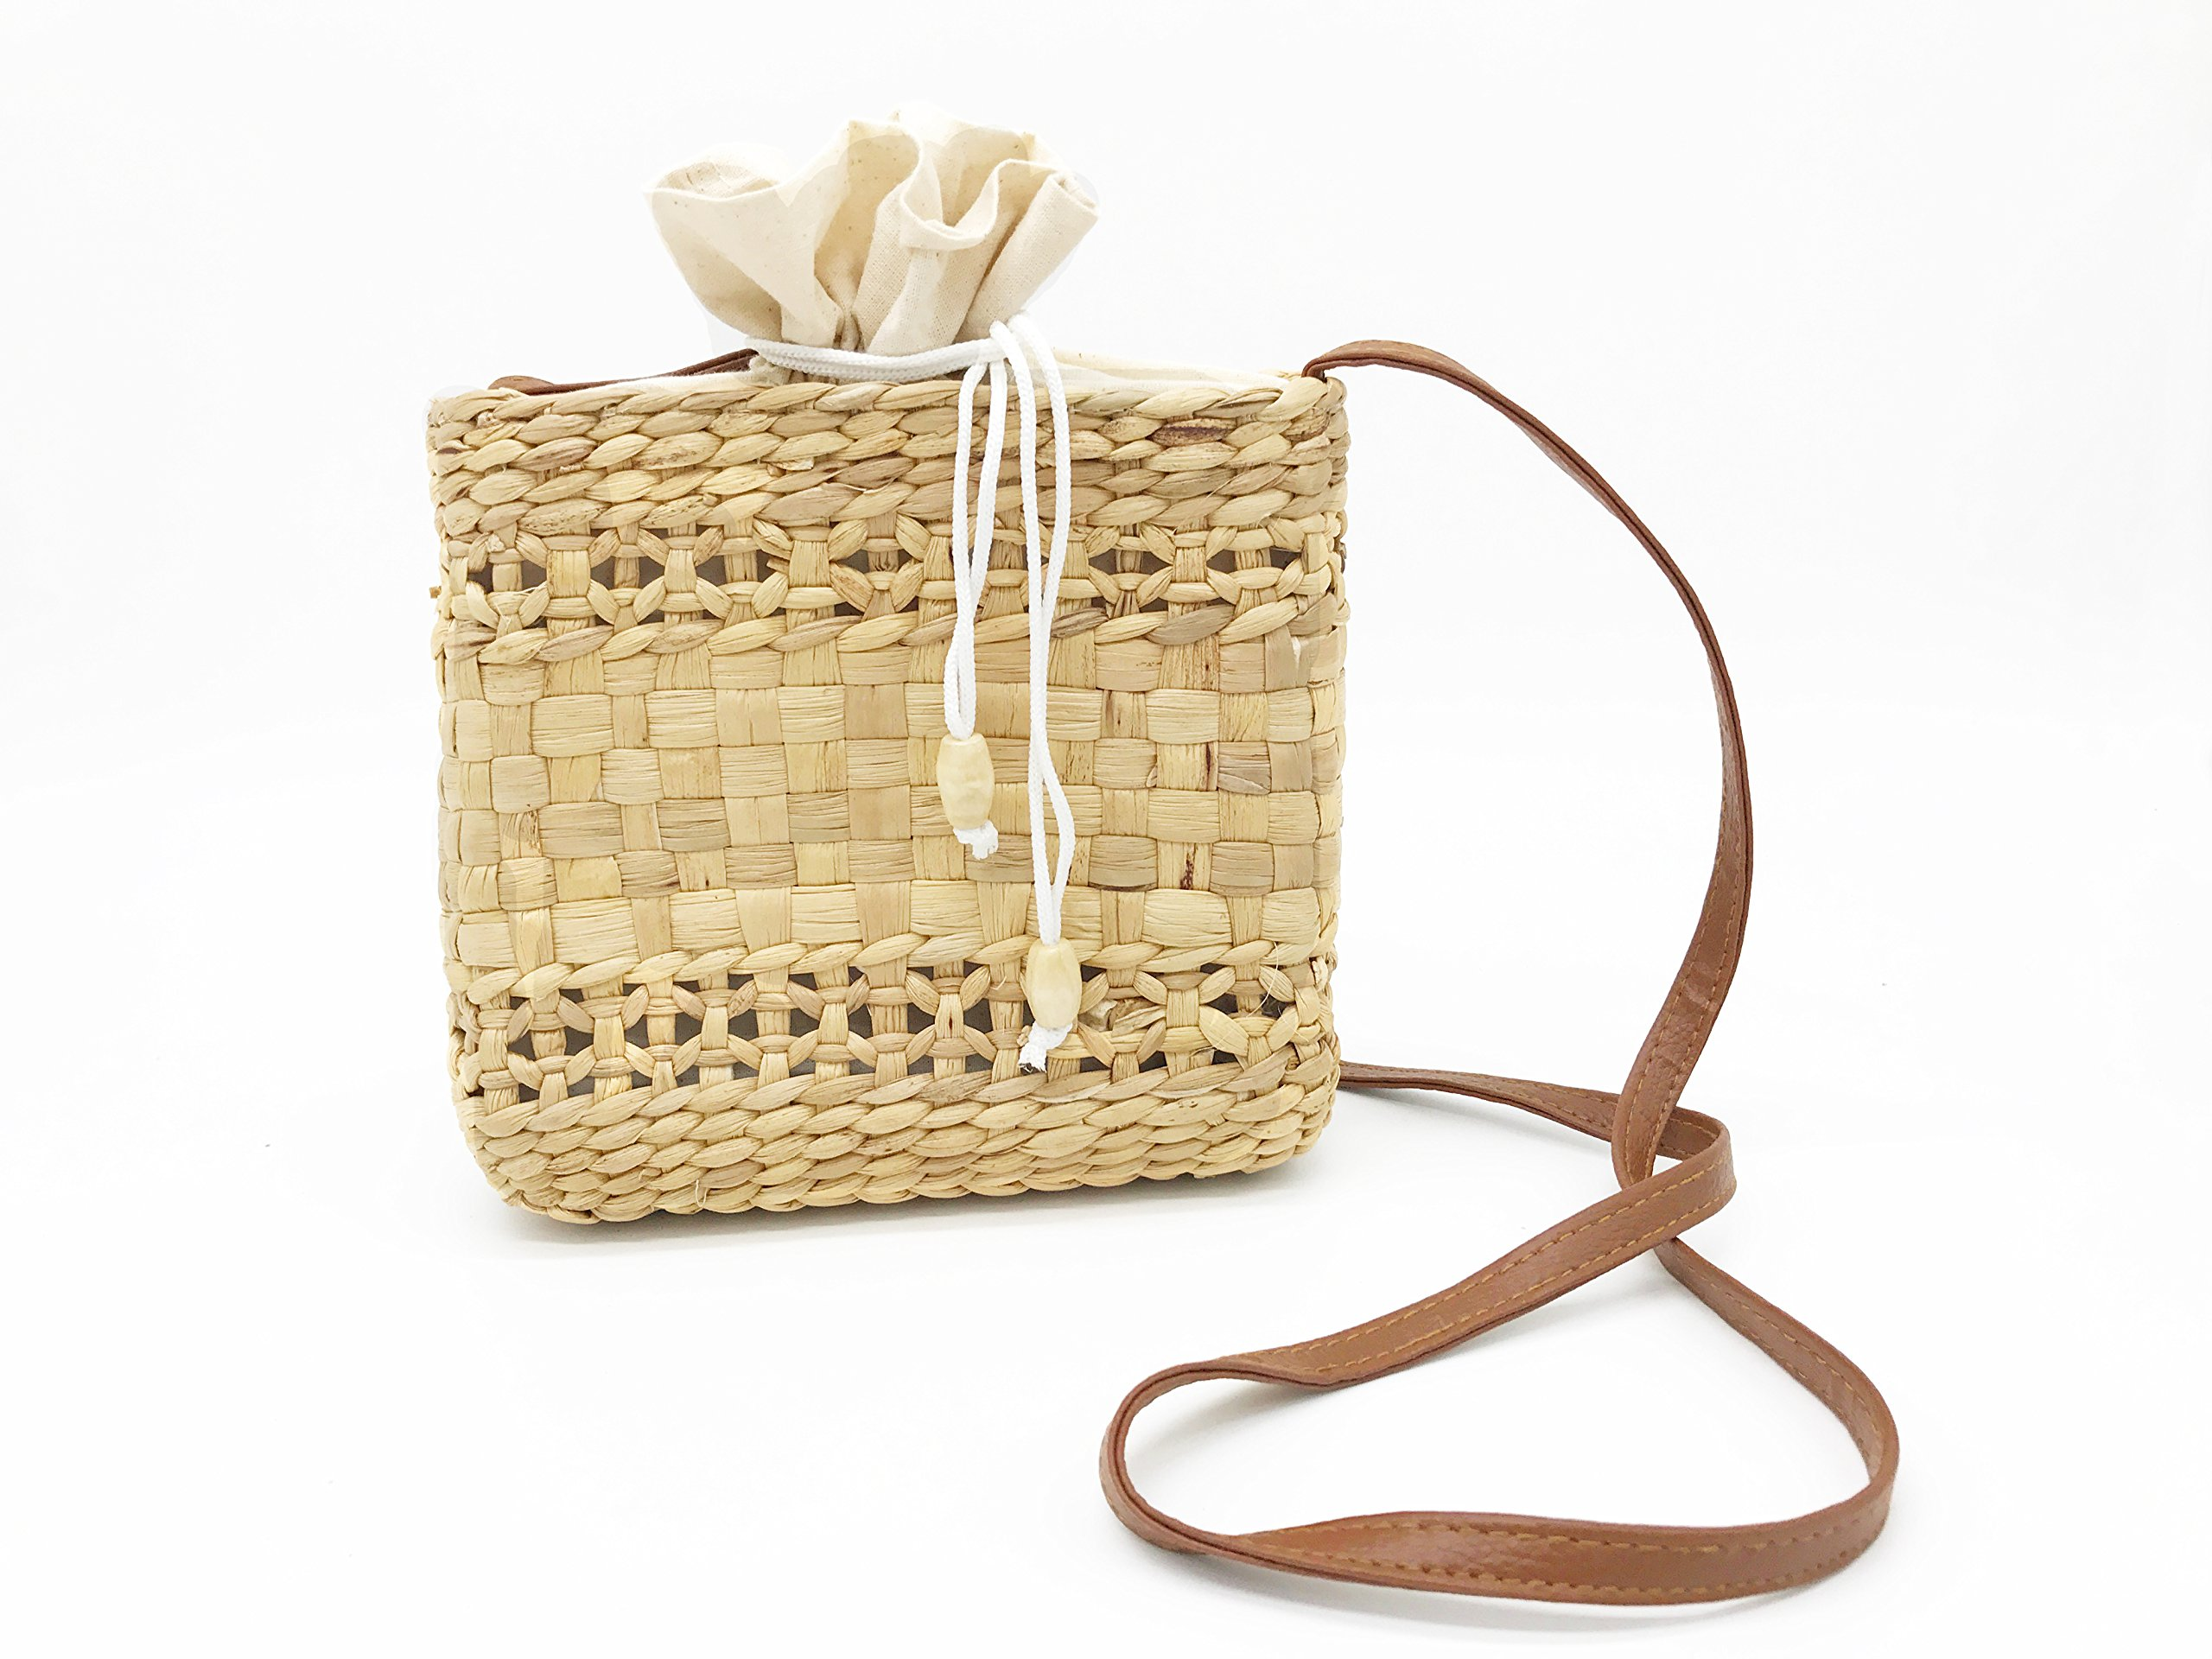 Women Straw Bag Summer Beach Tote Bag Square Handwoven Handbag Cross Body Shoulder Summer Purse with Leather Strap (Style 3)